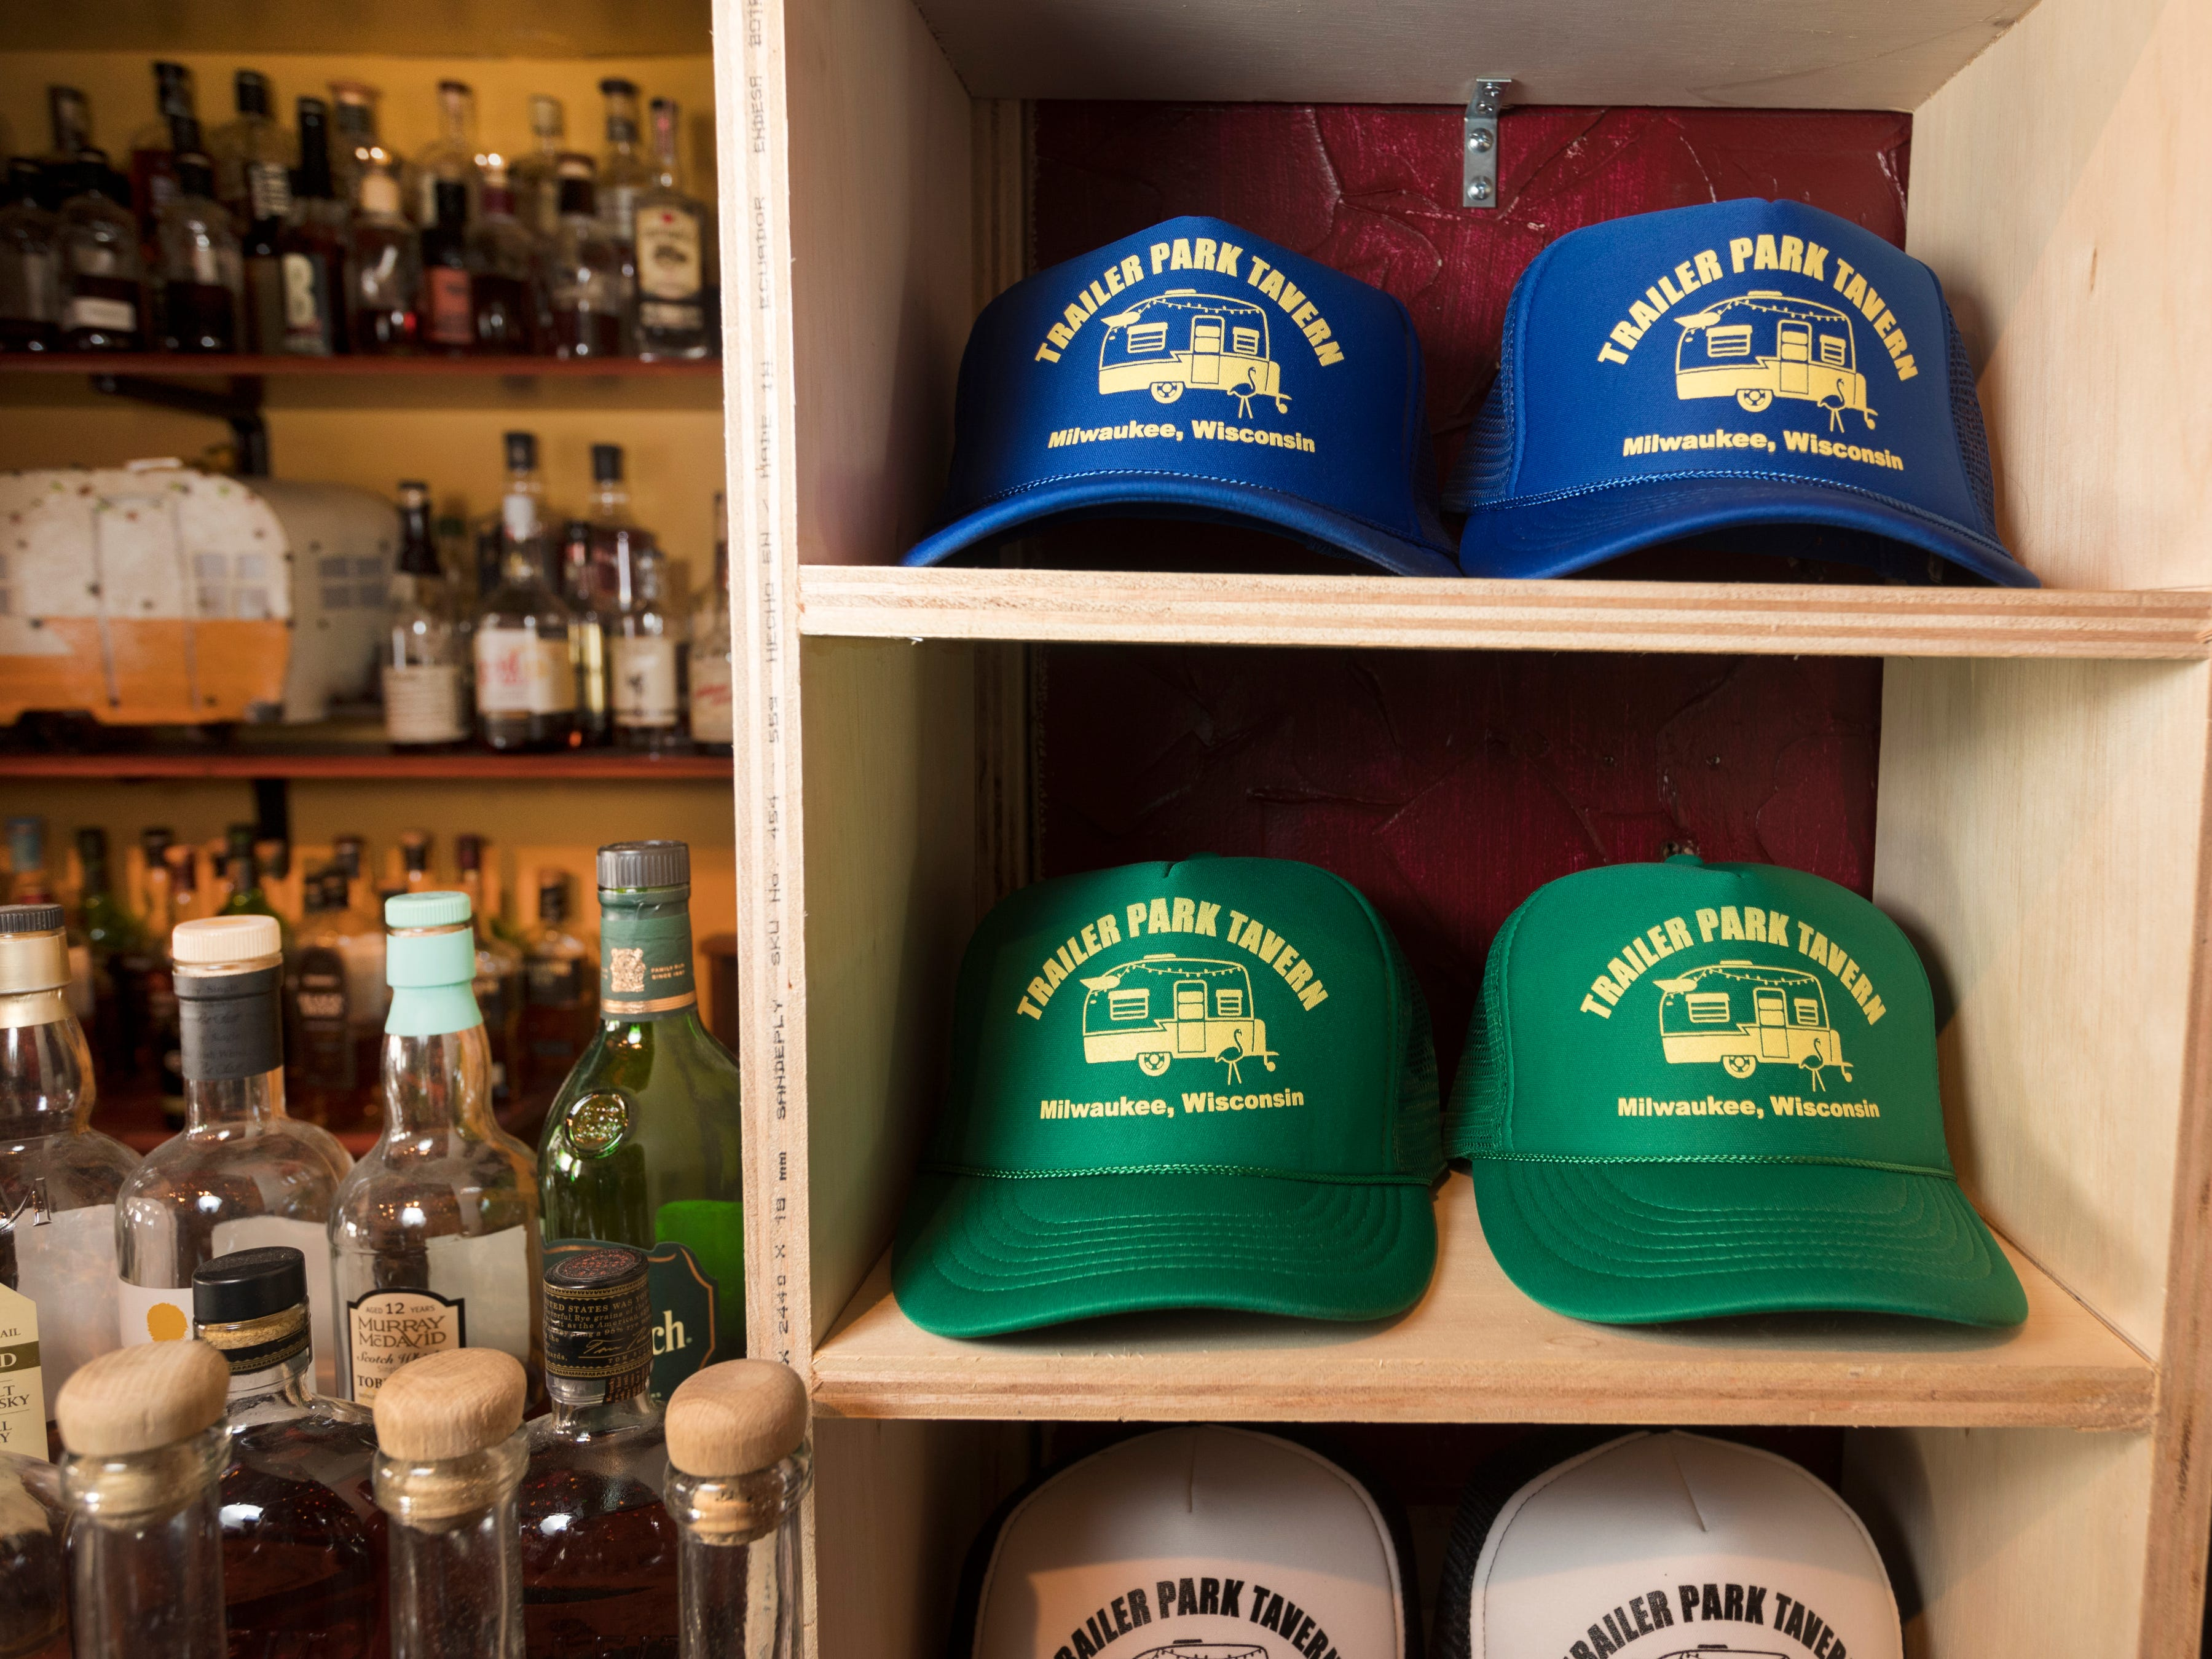 Souvenir hats are on display Tuesday, April 9, 2019 at the soon-to-open Trailer Park Tavern, 2989 S. Kinnickinnic Ave. in Milwaukee, Wis. The bar, owned by Jordon (CQ) Bledsoe, is to open in May.